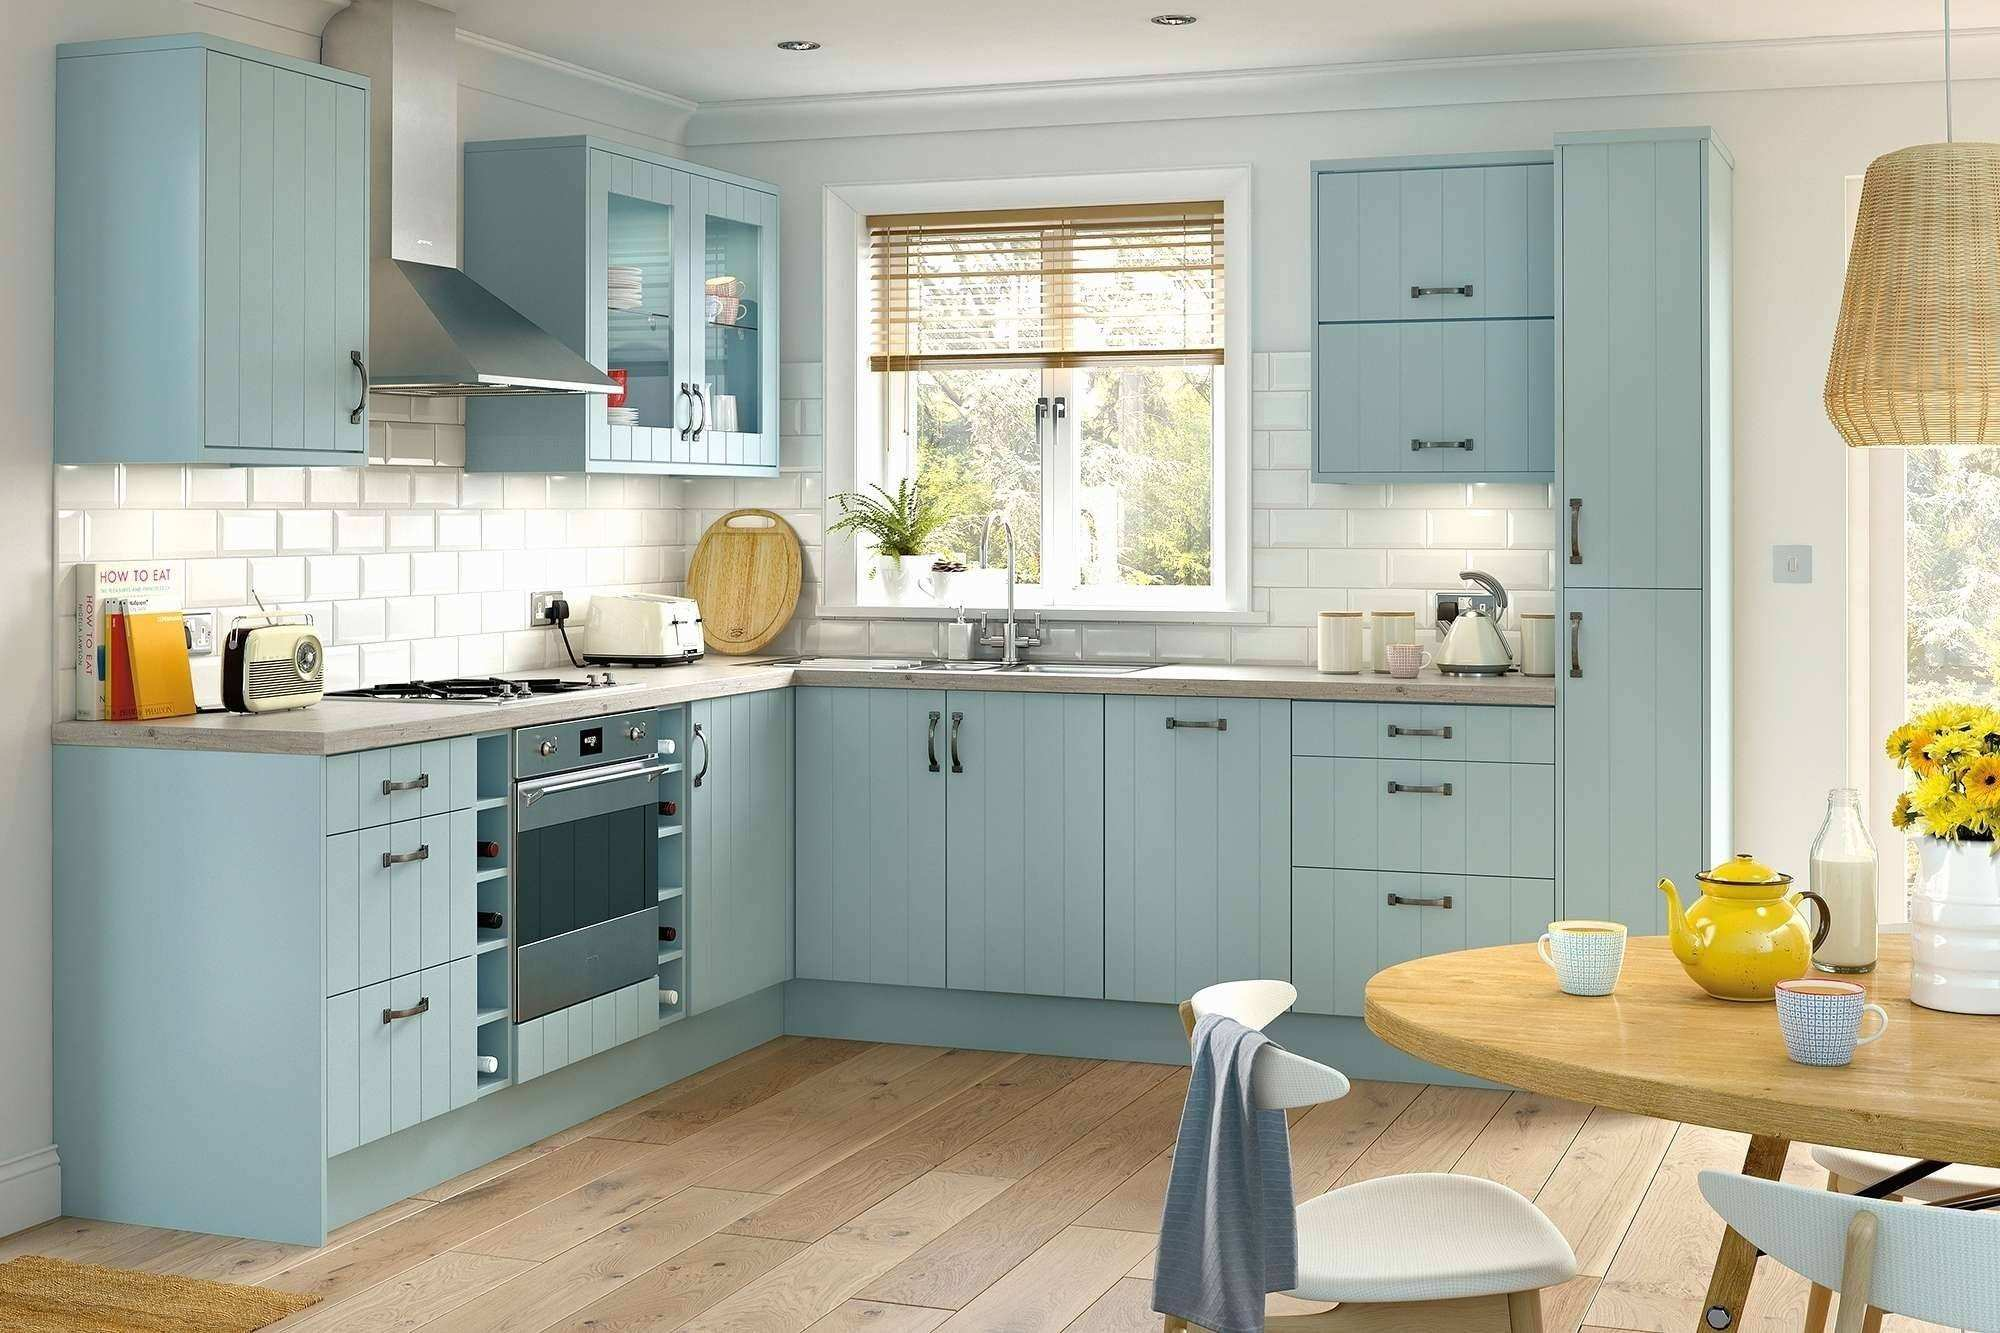 Kitchen 12 Unique Country Kitchen Ideas Rustic Country Kitchen